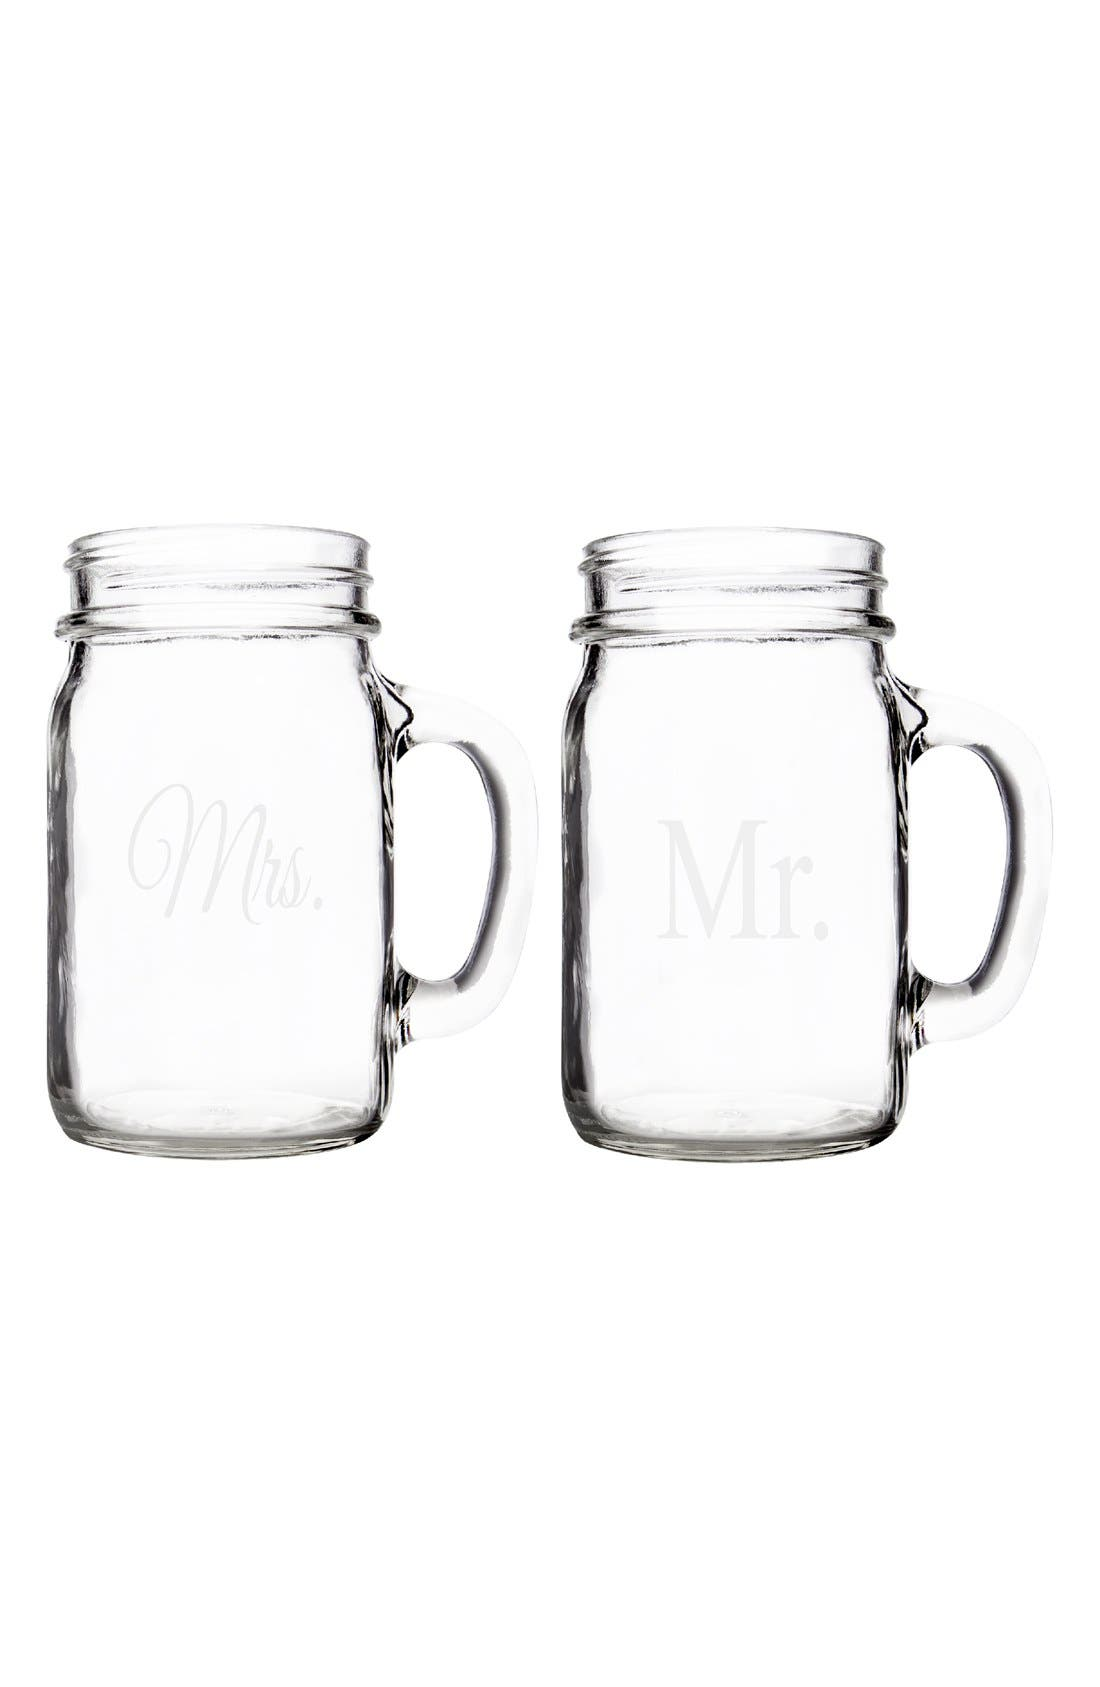 'For The Couple' Mason Jar Glasses with Handles,                             Alternate thumbnail 5, color,                             100